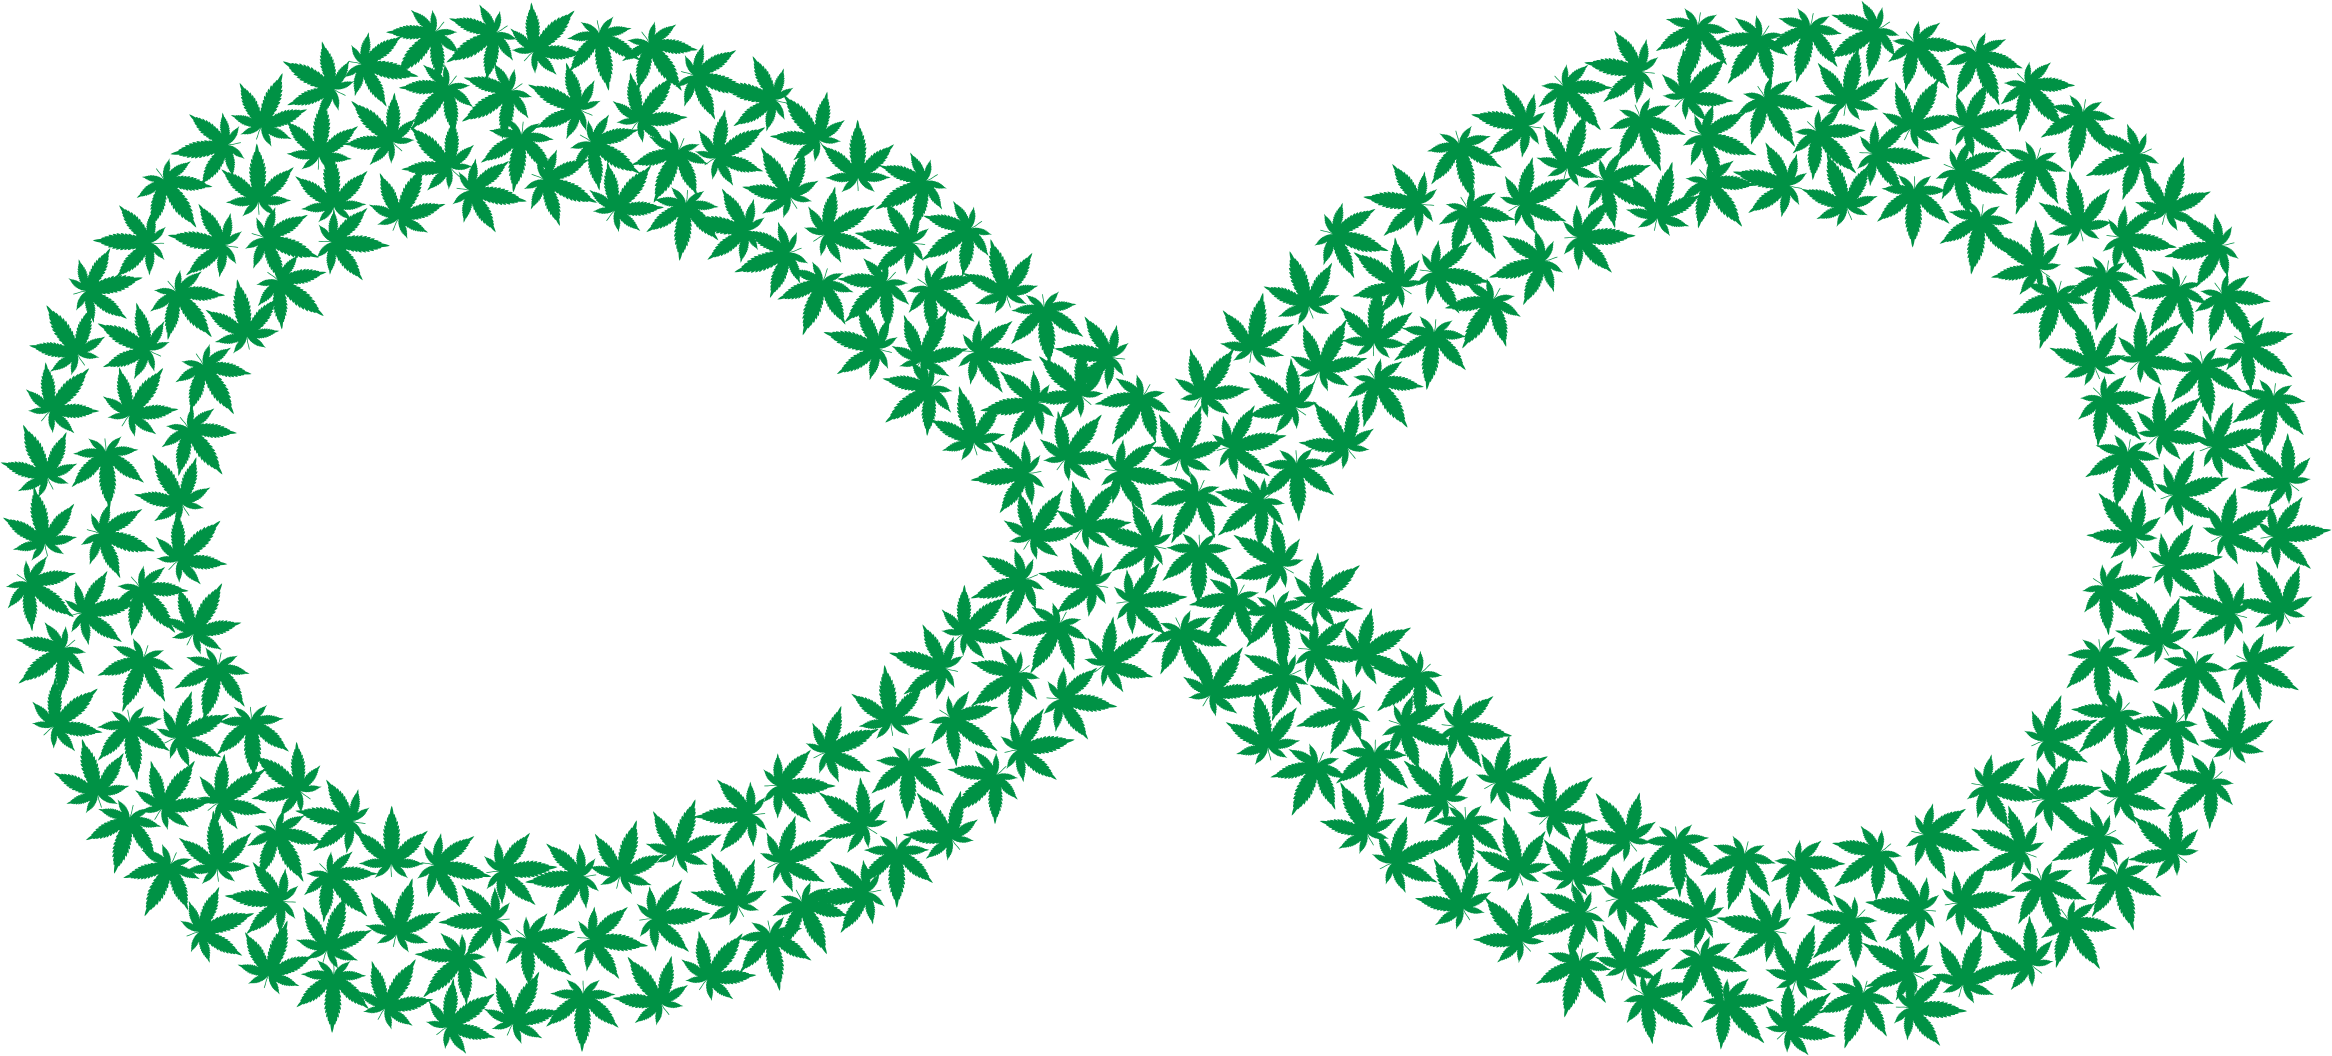 Infinity Sign With Marijuana Leaves Vector Clipart Image Free Stock Photo Public Domain Photo Cc0 Images